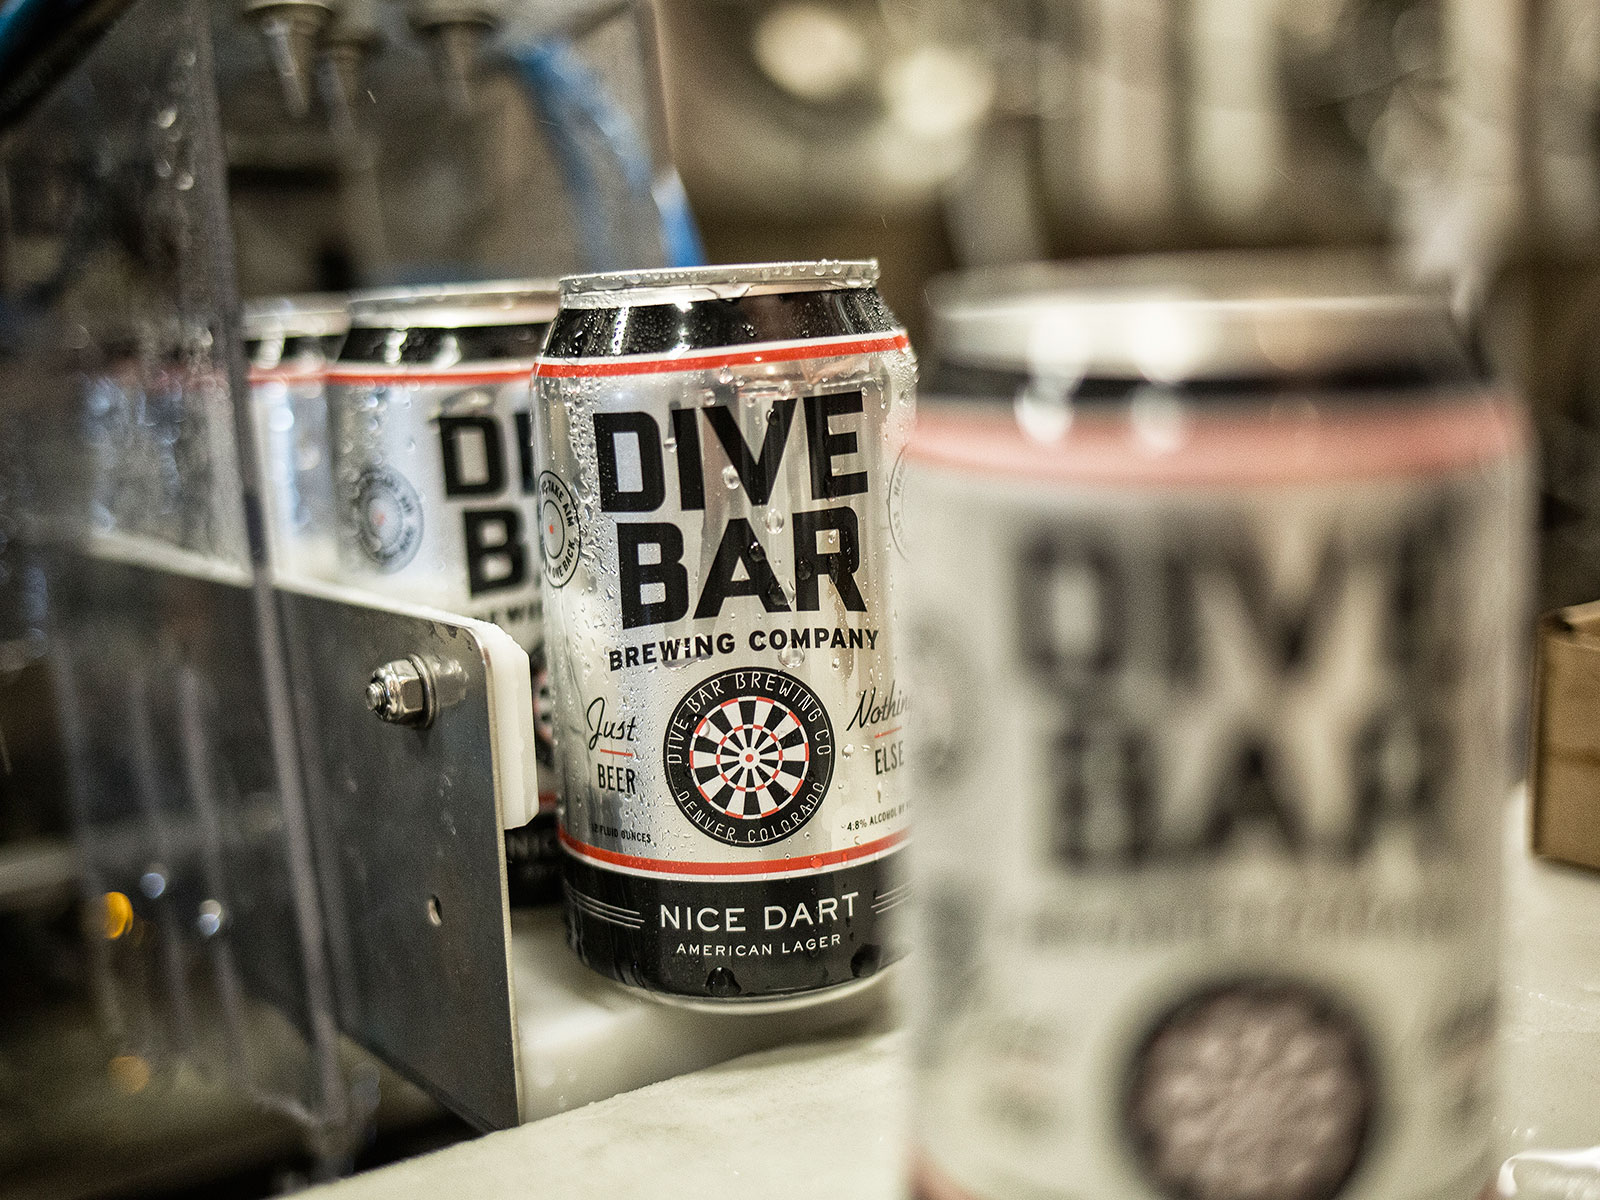 Denver Has a Craft Beer Specifically Made for Dive Bars